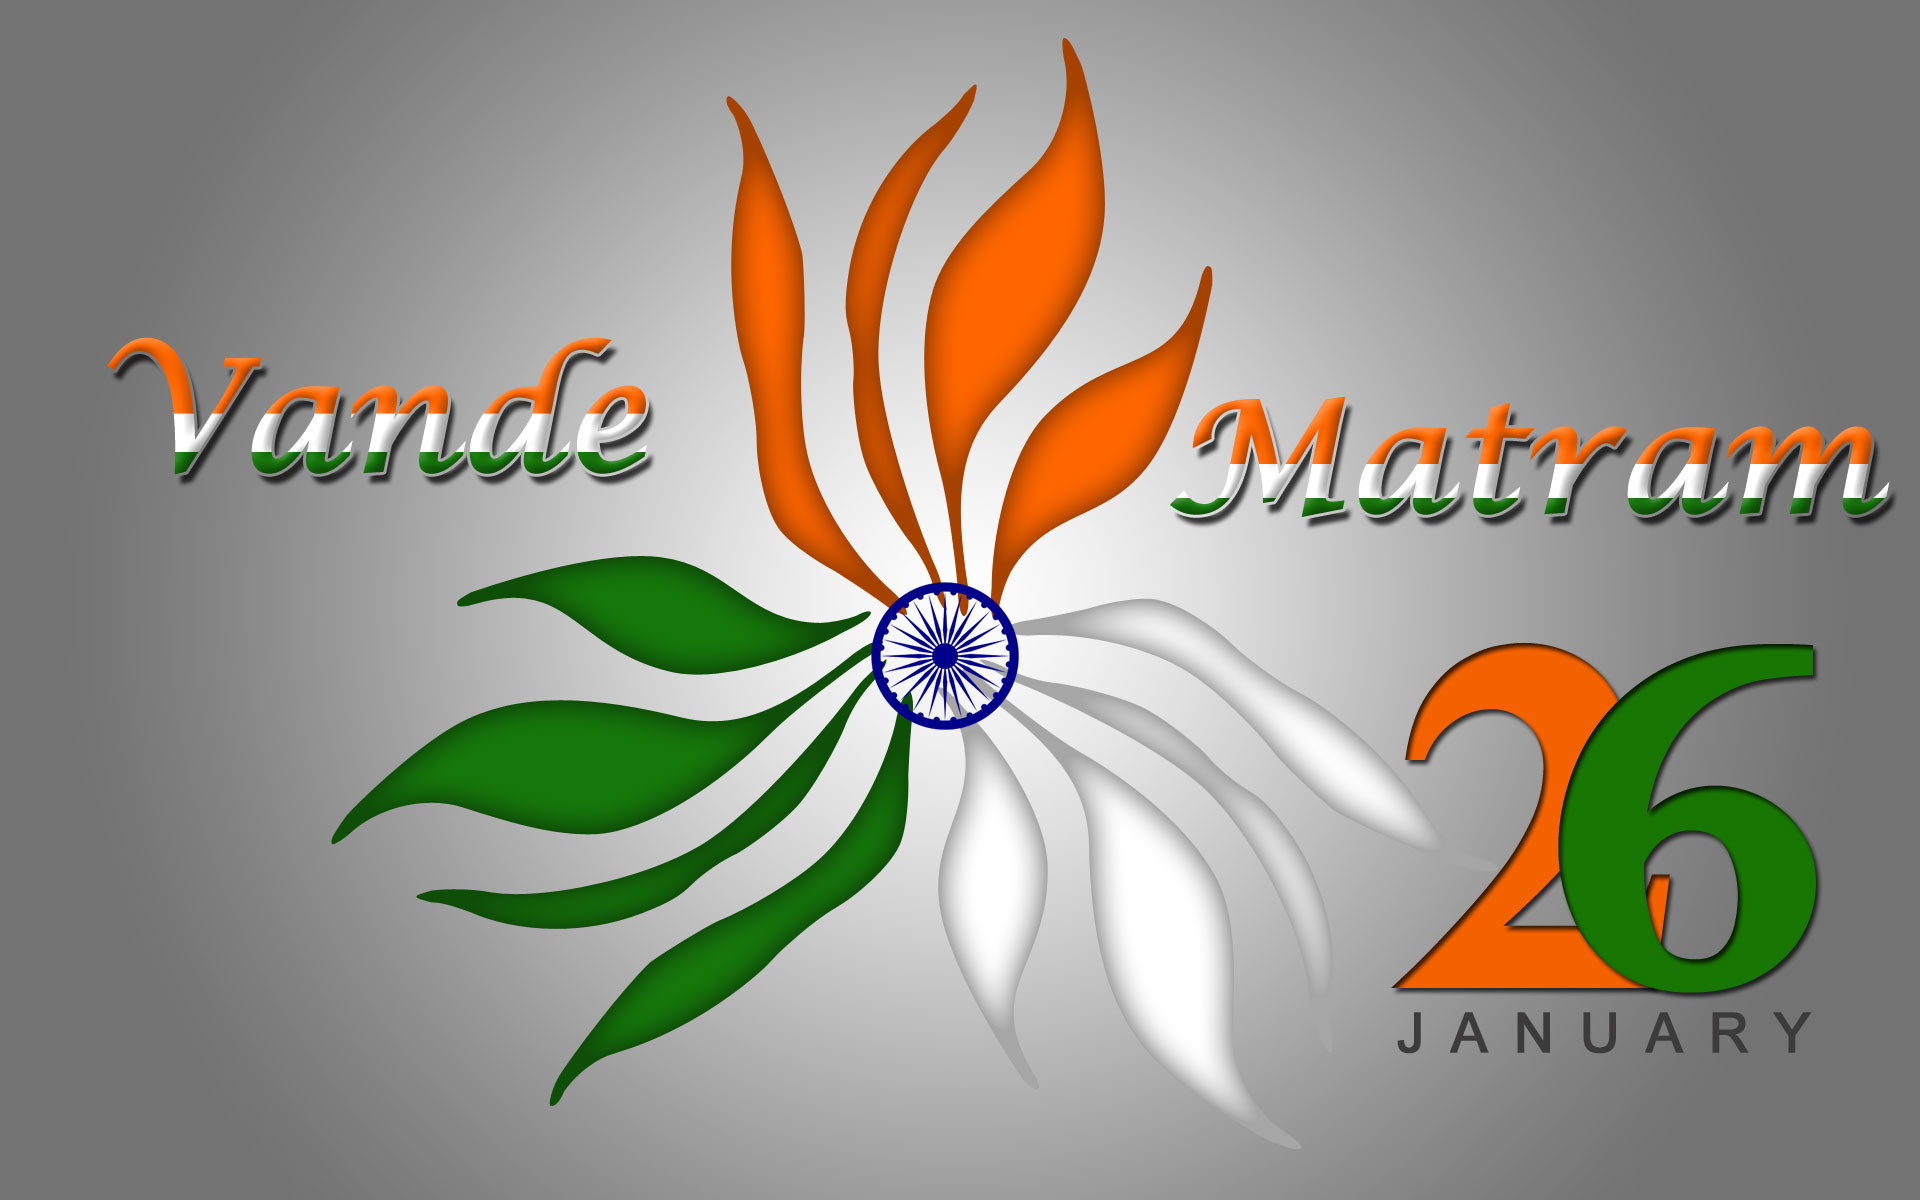 Republic Day Image with Vande Mataram Quote